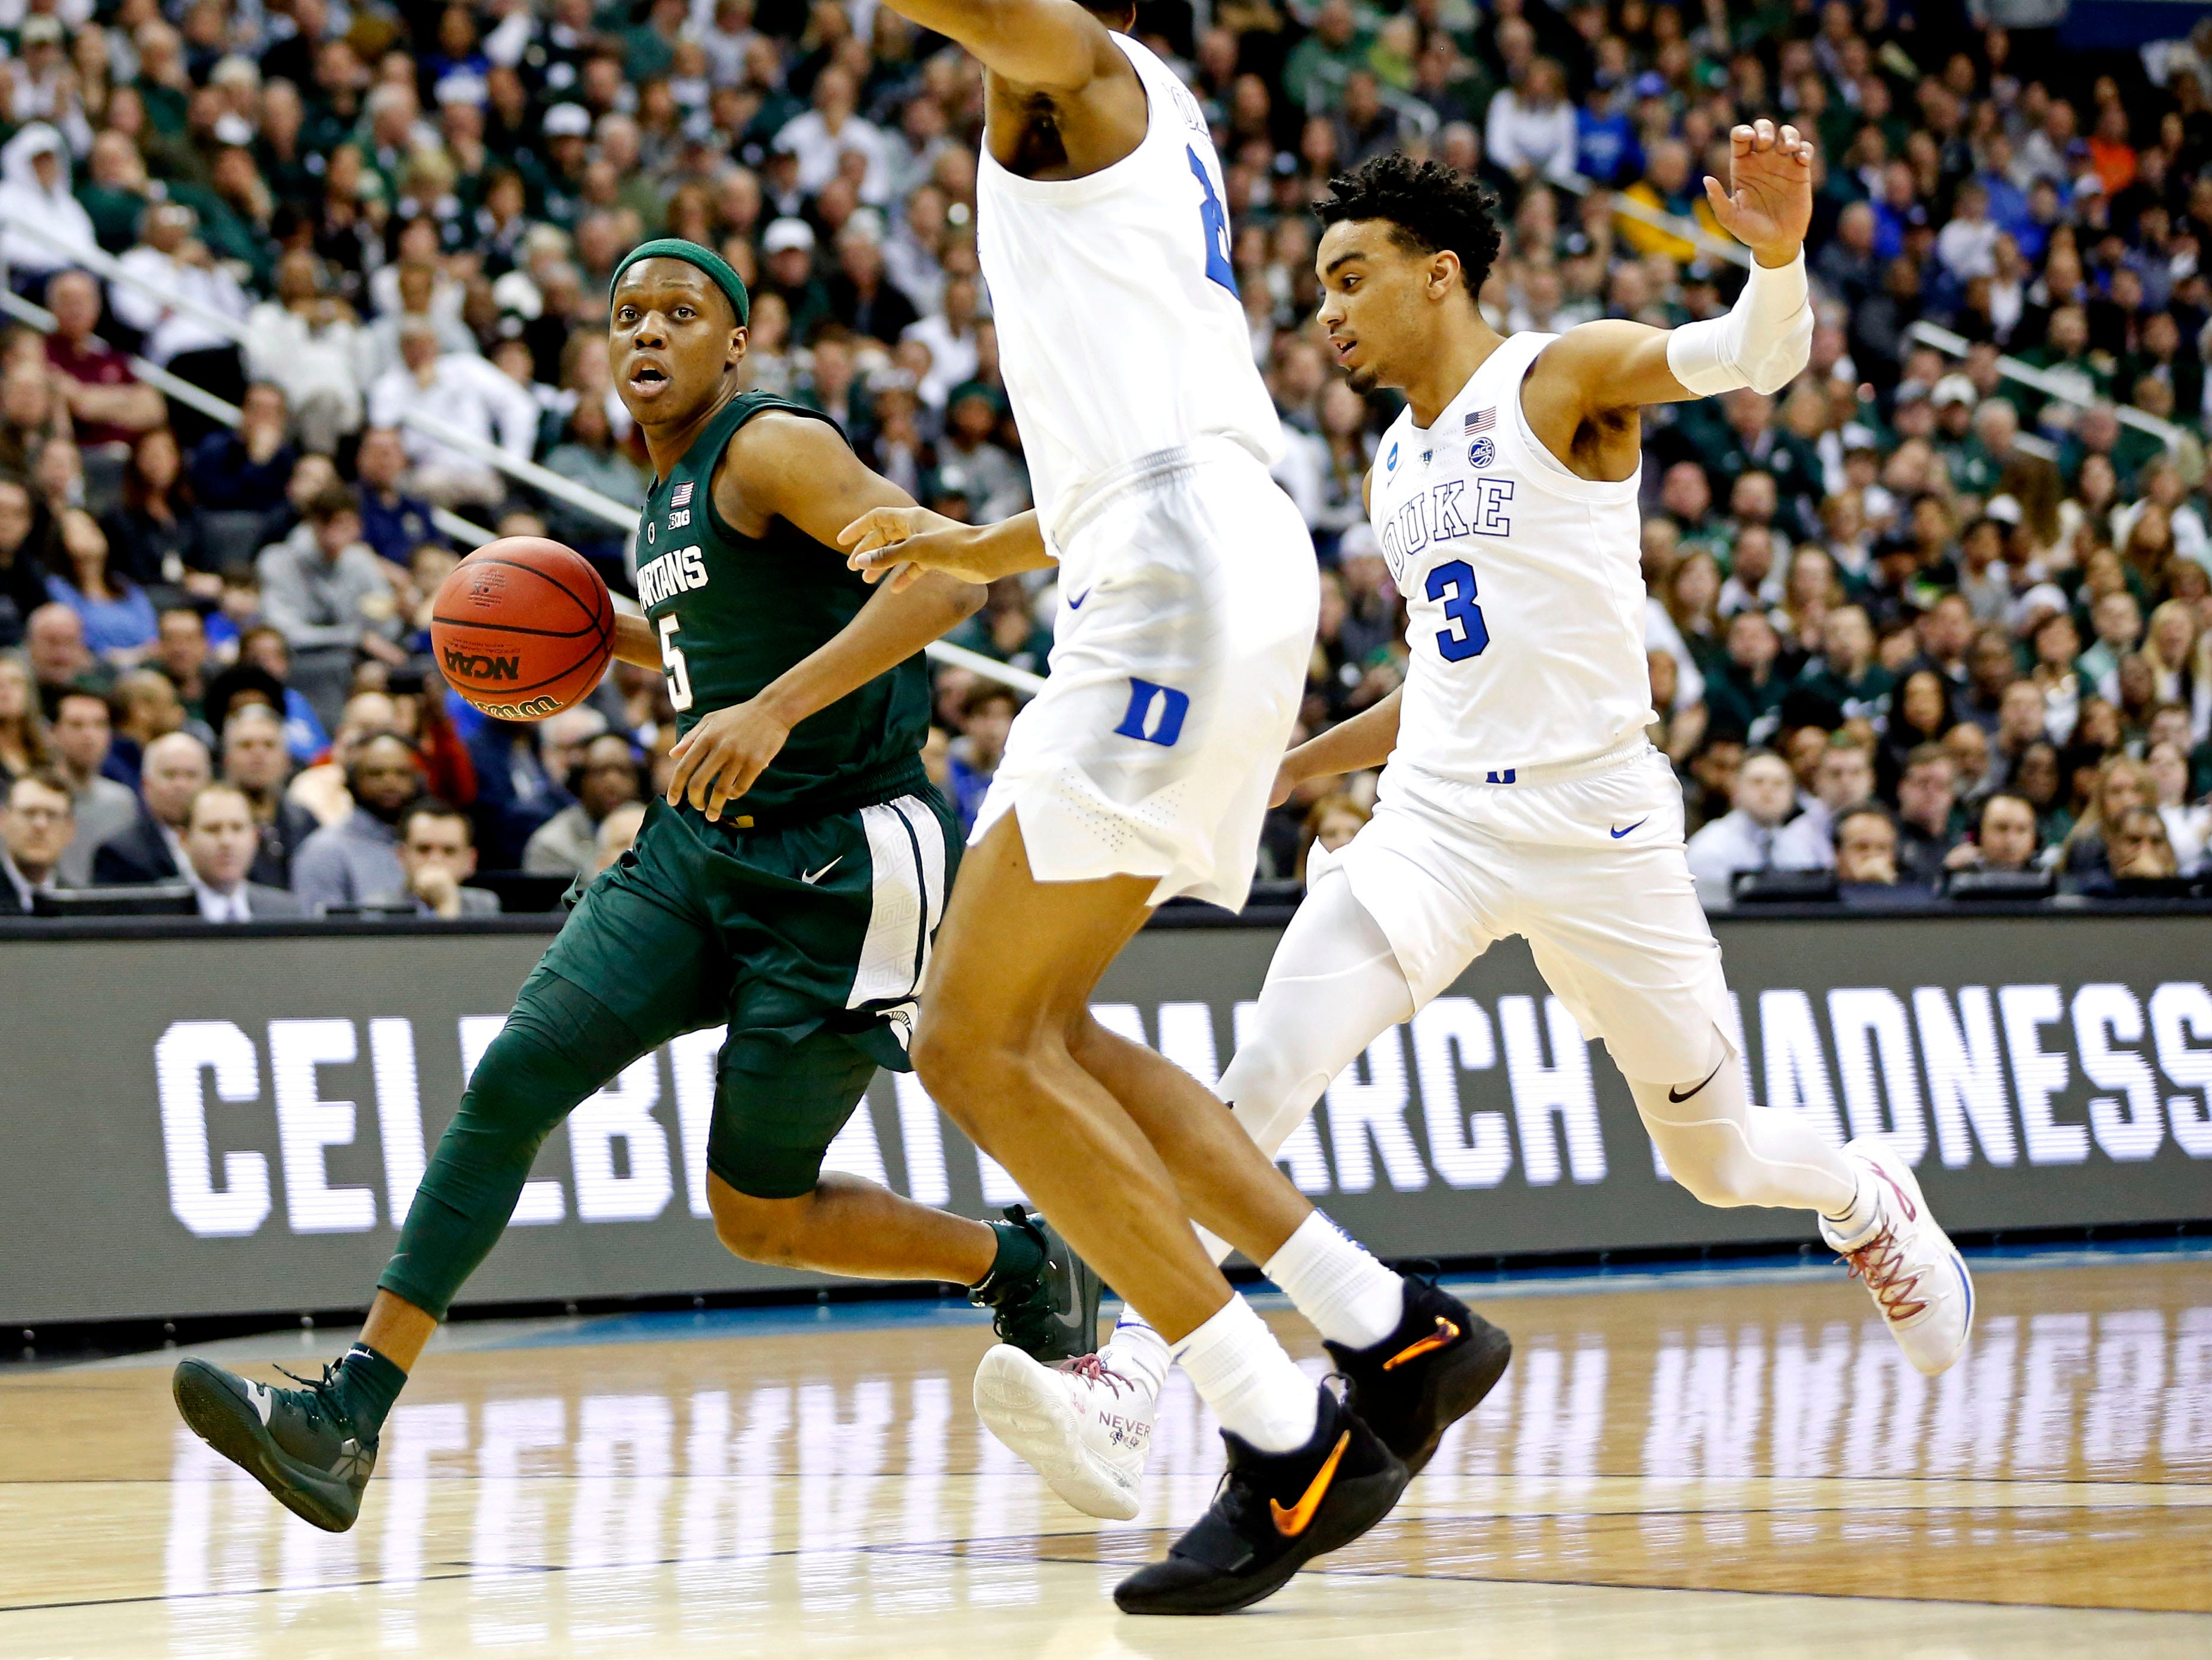 Michigan State Spartans guard Cassius Winston (5) drives to the basket against Duke Blue Devils guard Tre Jones (3) during the first half in the championship game of the east regional of the 2019 NCAA Tournament at Capital One Arena.